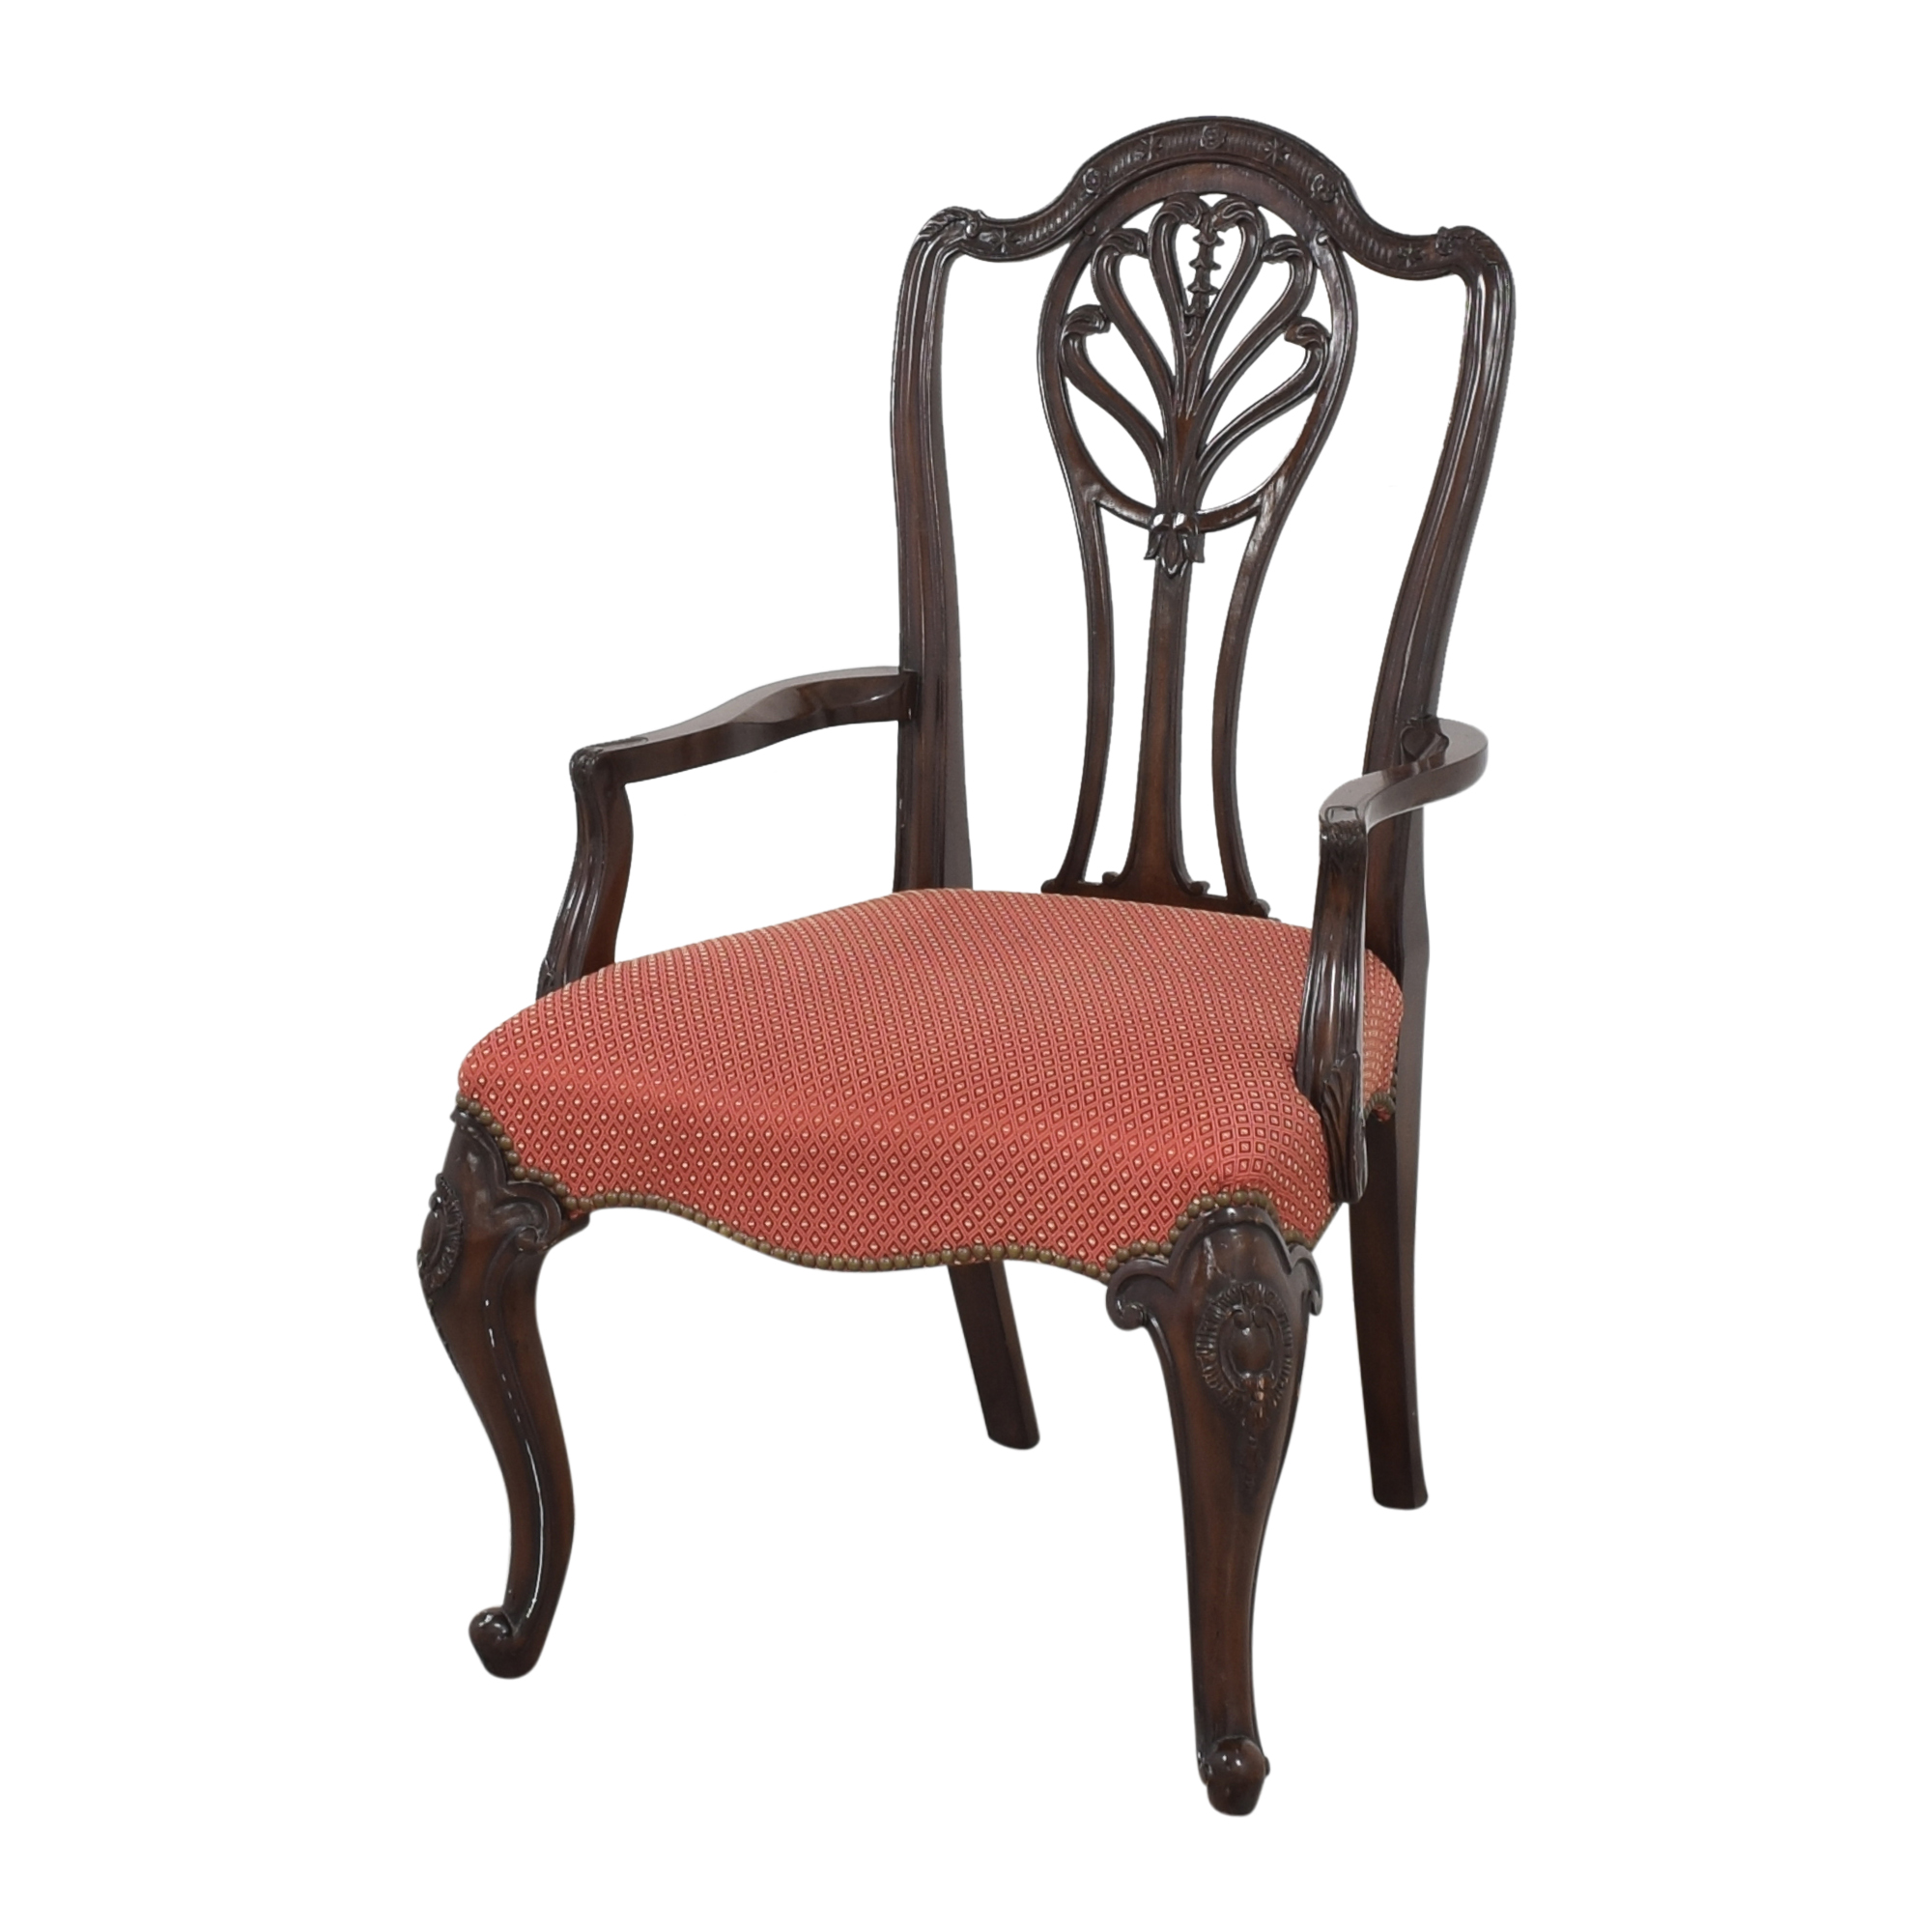 Drexel Heritage Drexel Heritage Upholstered Dining Arm Chairs used